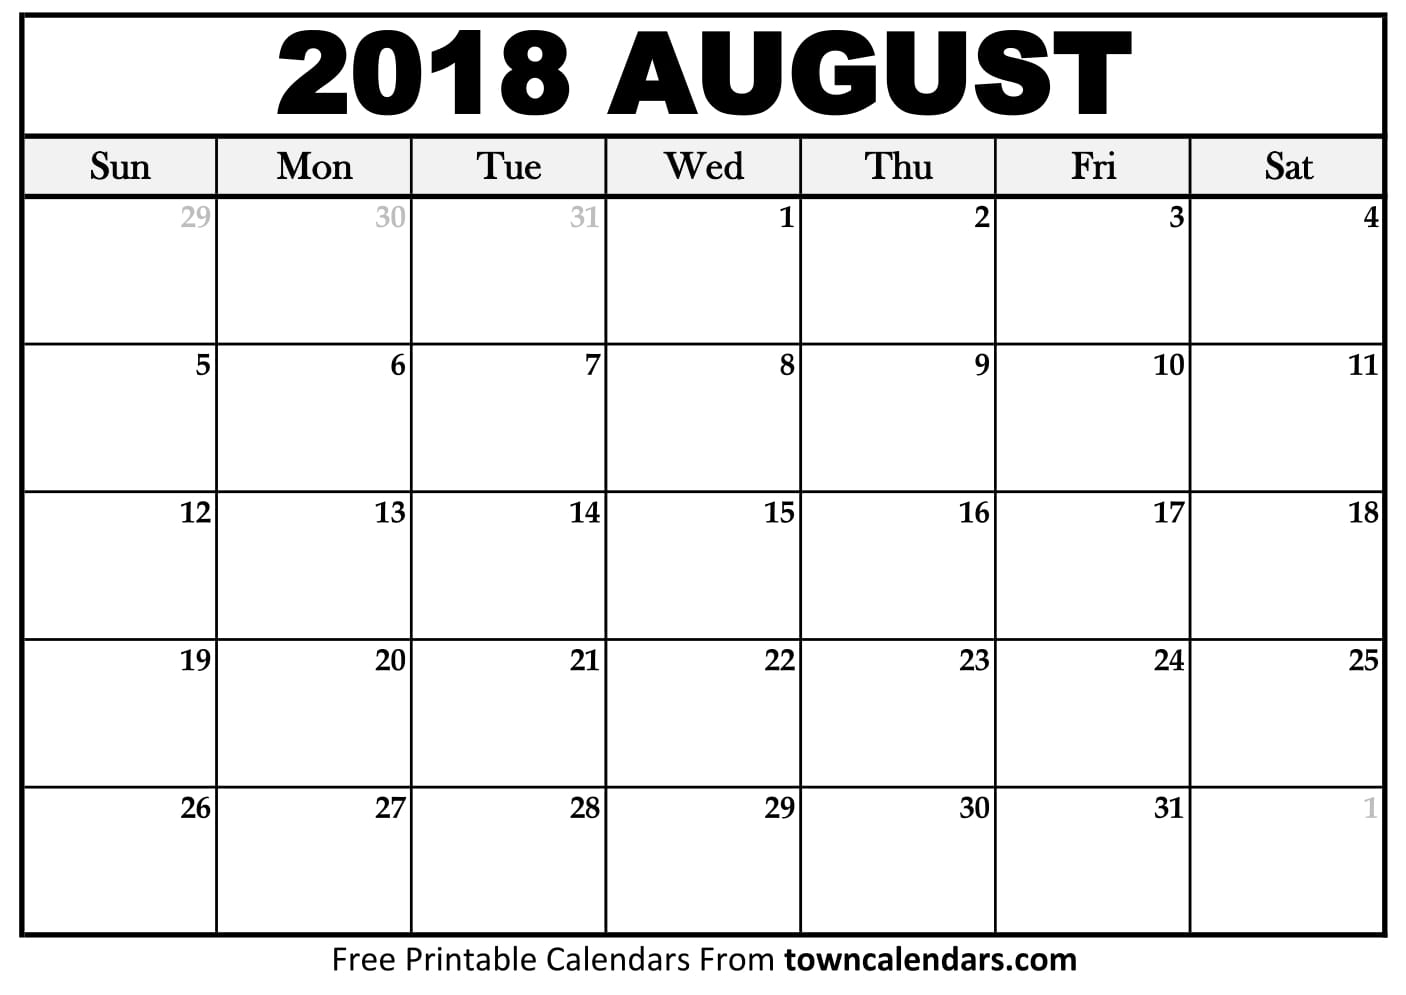 August 2018 Calendar Blank Template - Free Printable Calendar, Blank throughout Blank Printable Calendar Pages Aug